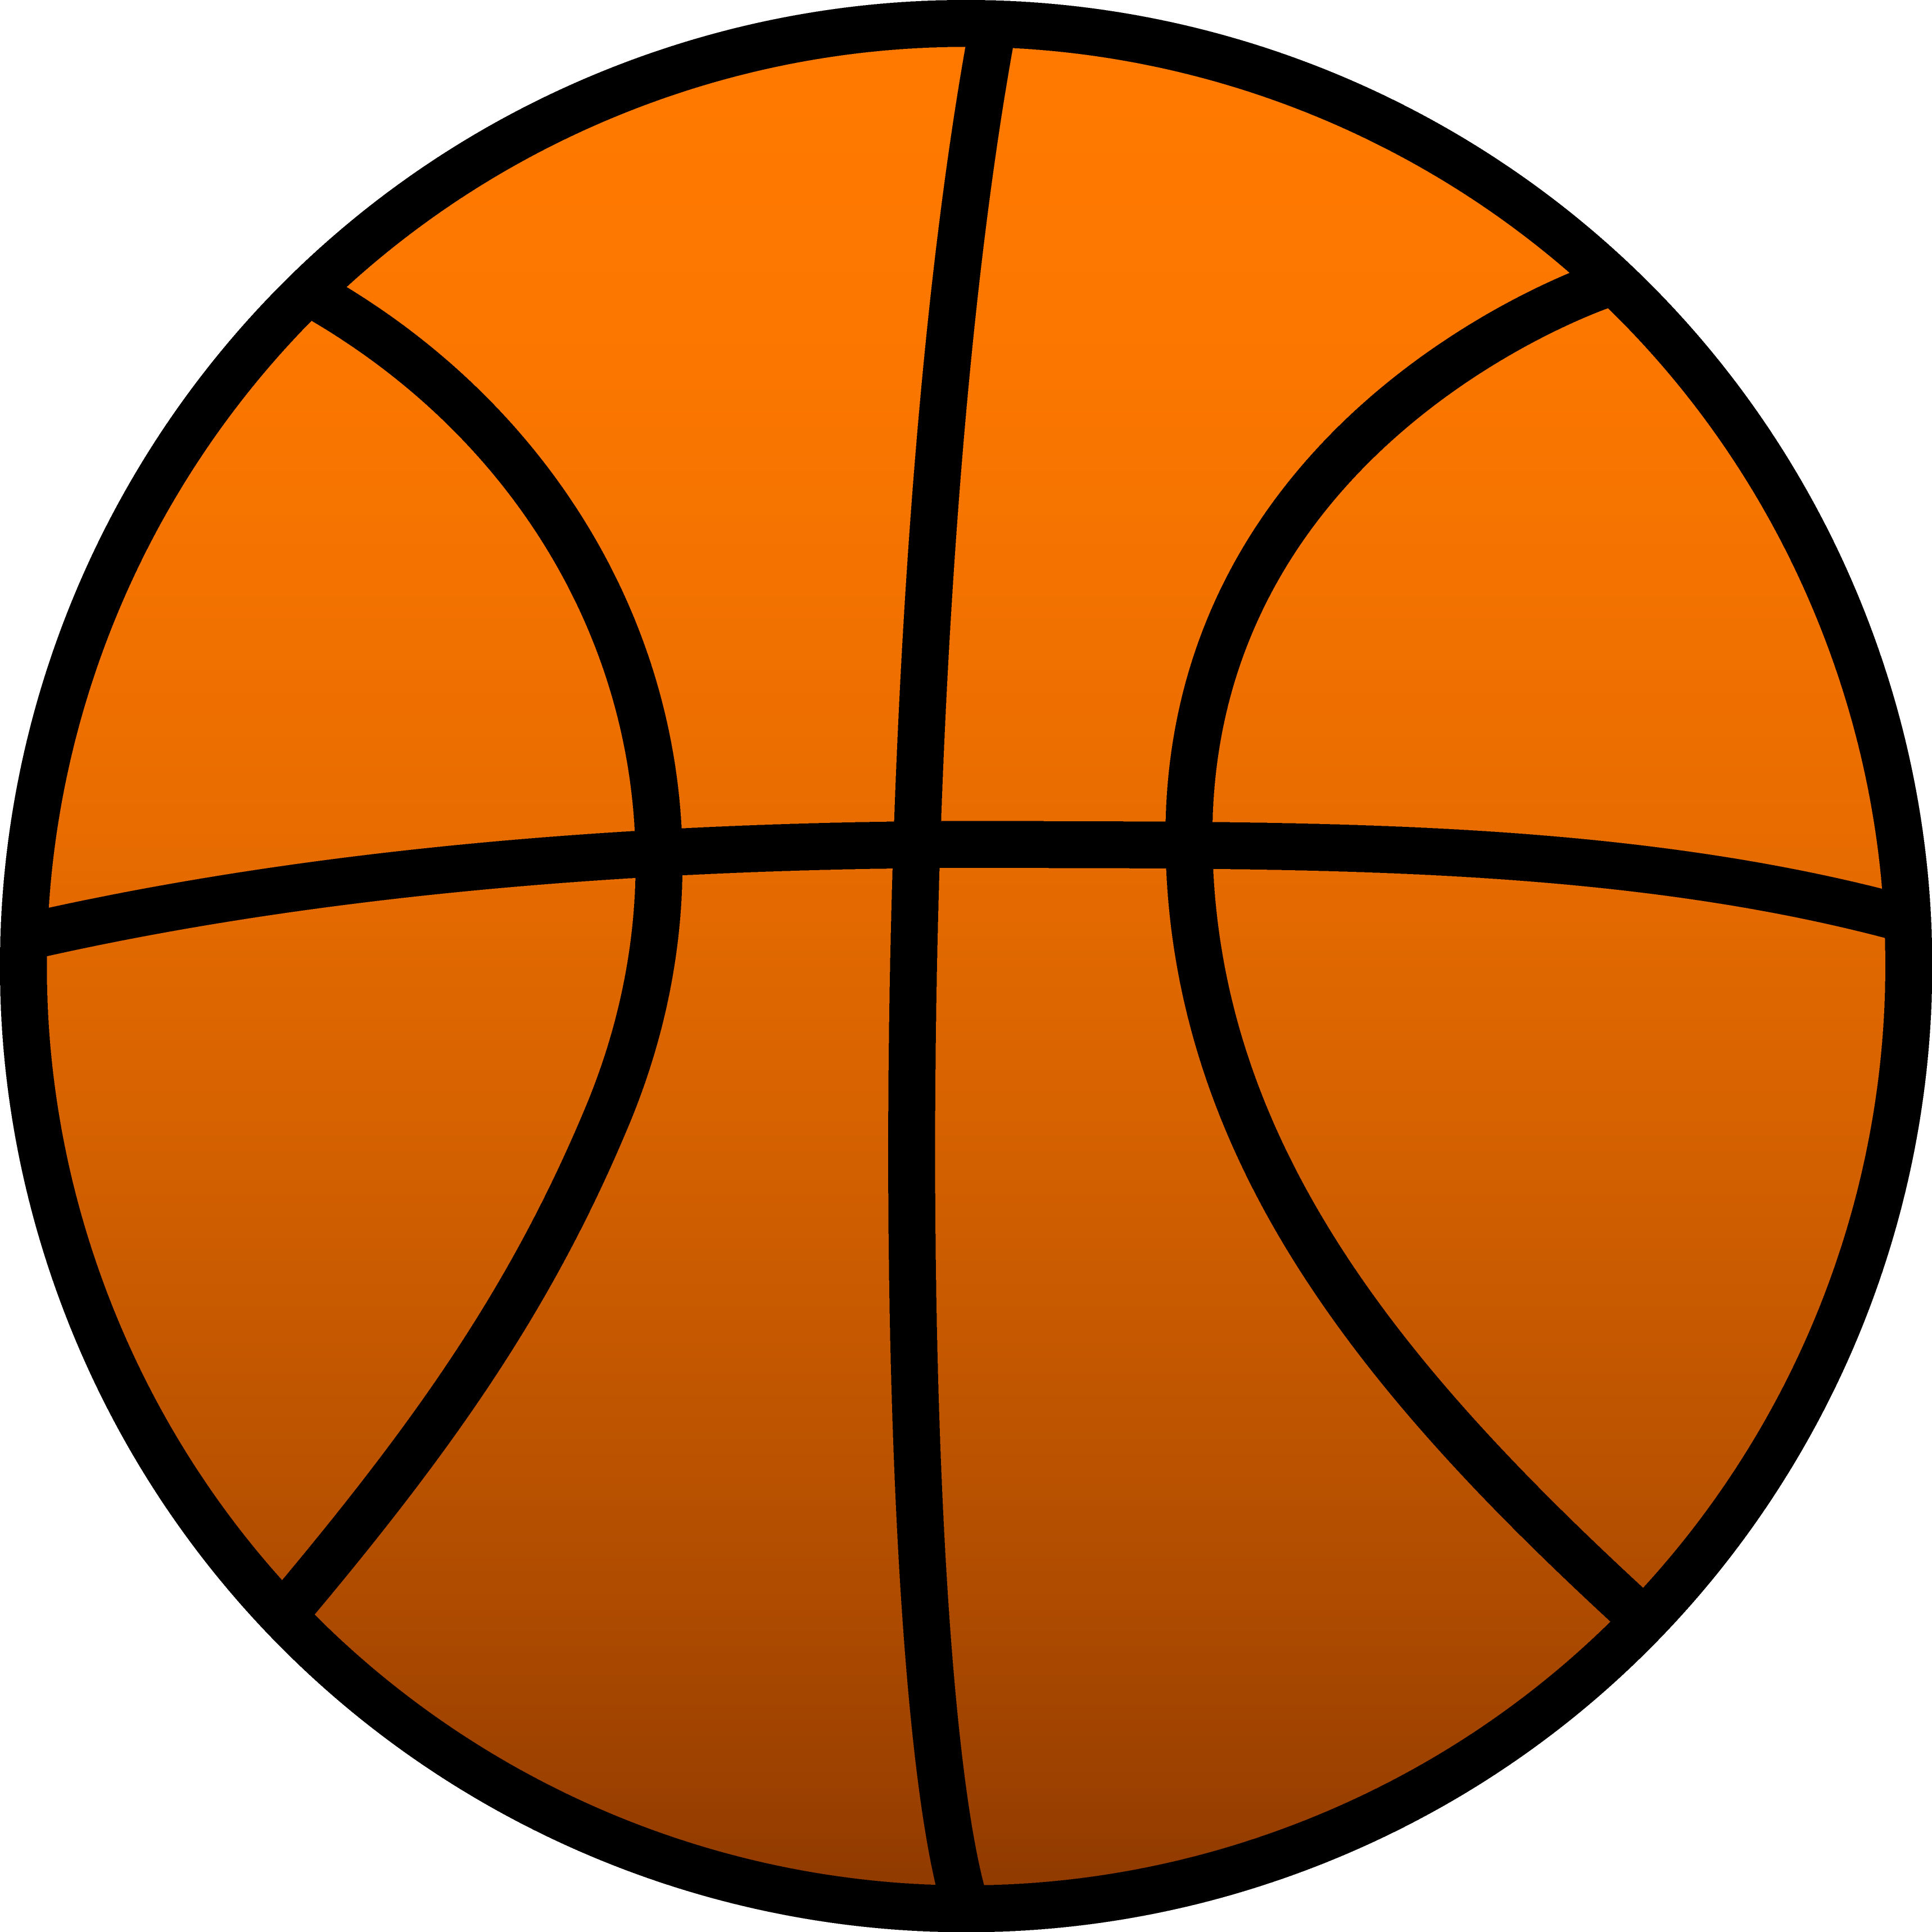 3437x3437 Basketball Clipart Images